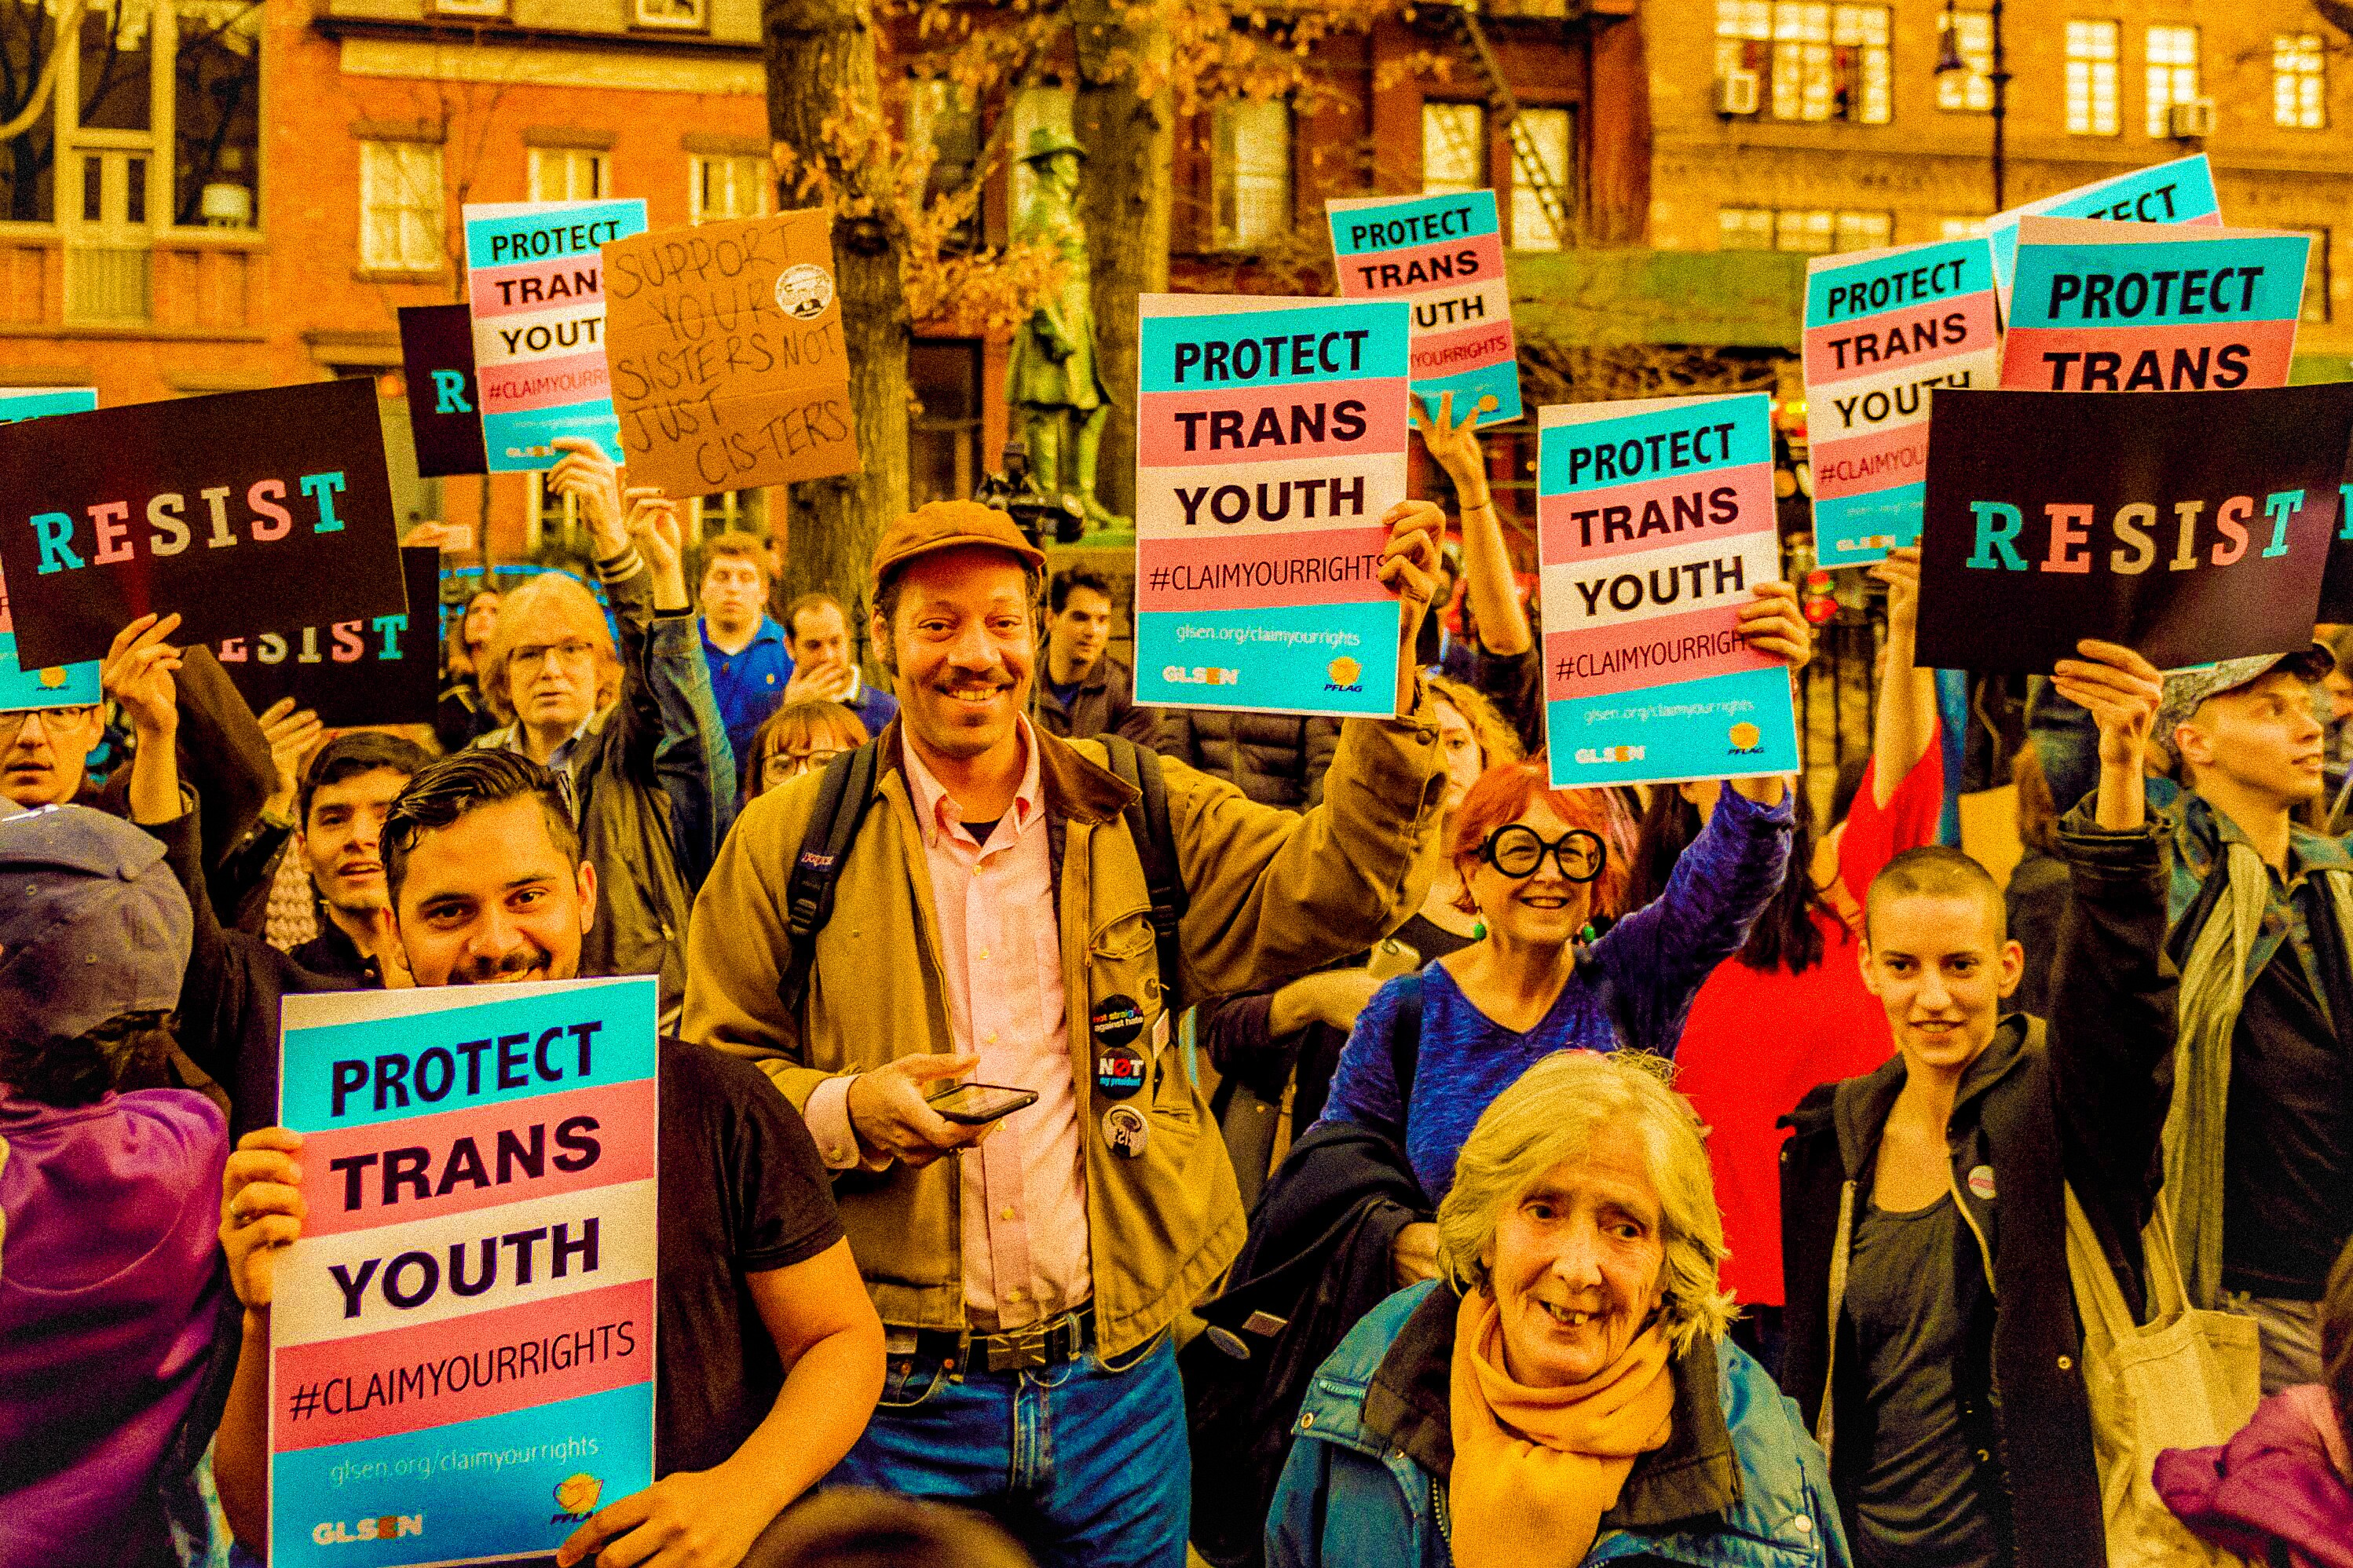 Advocates Demand Devos Protect Students >> Devos Stands Up To The Transgender Bullies